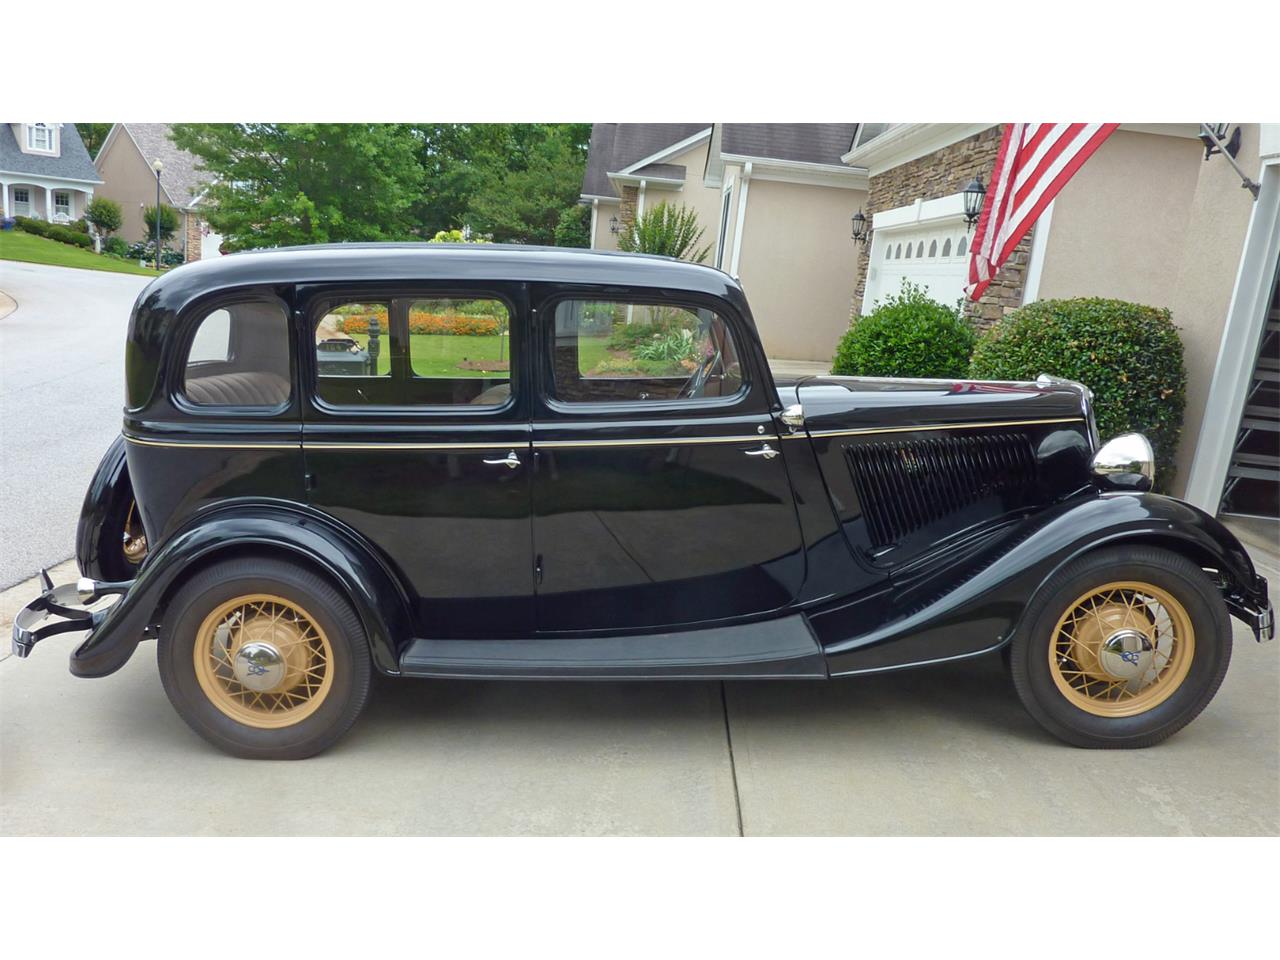 Large Picture of Classic 1934 Sedan located in Georgia - $46,000.00 Offered by a Private Seller - ISZK